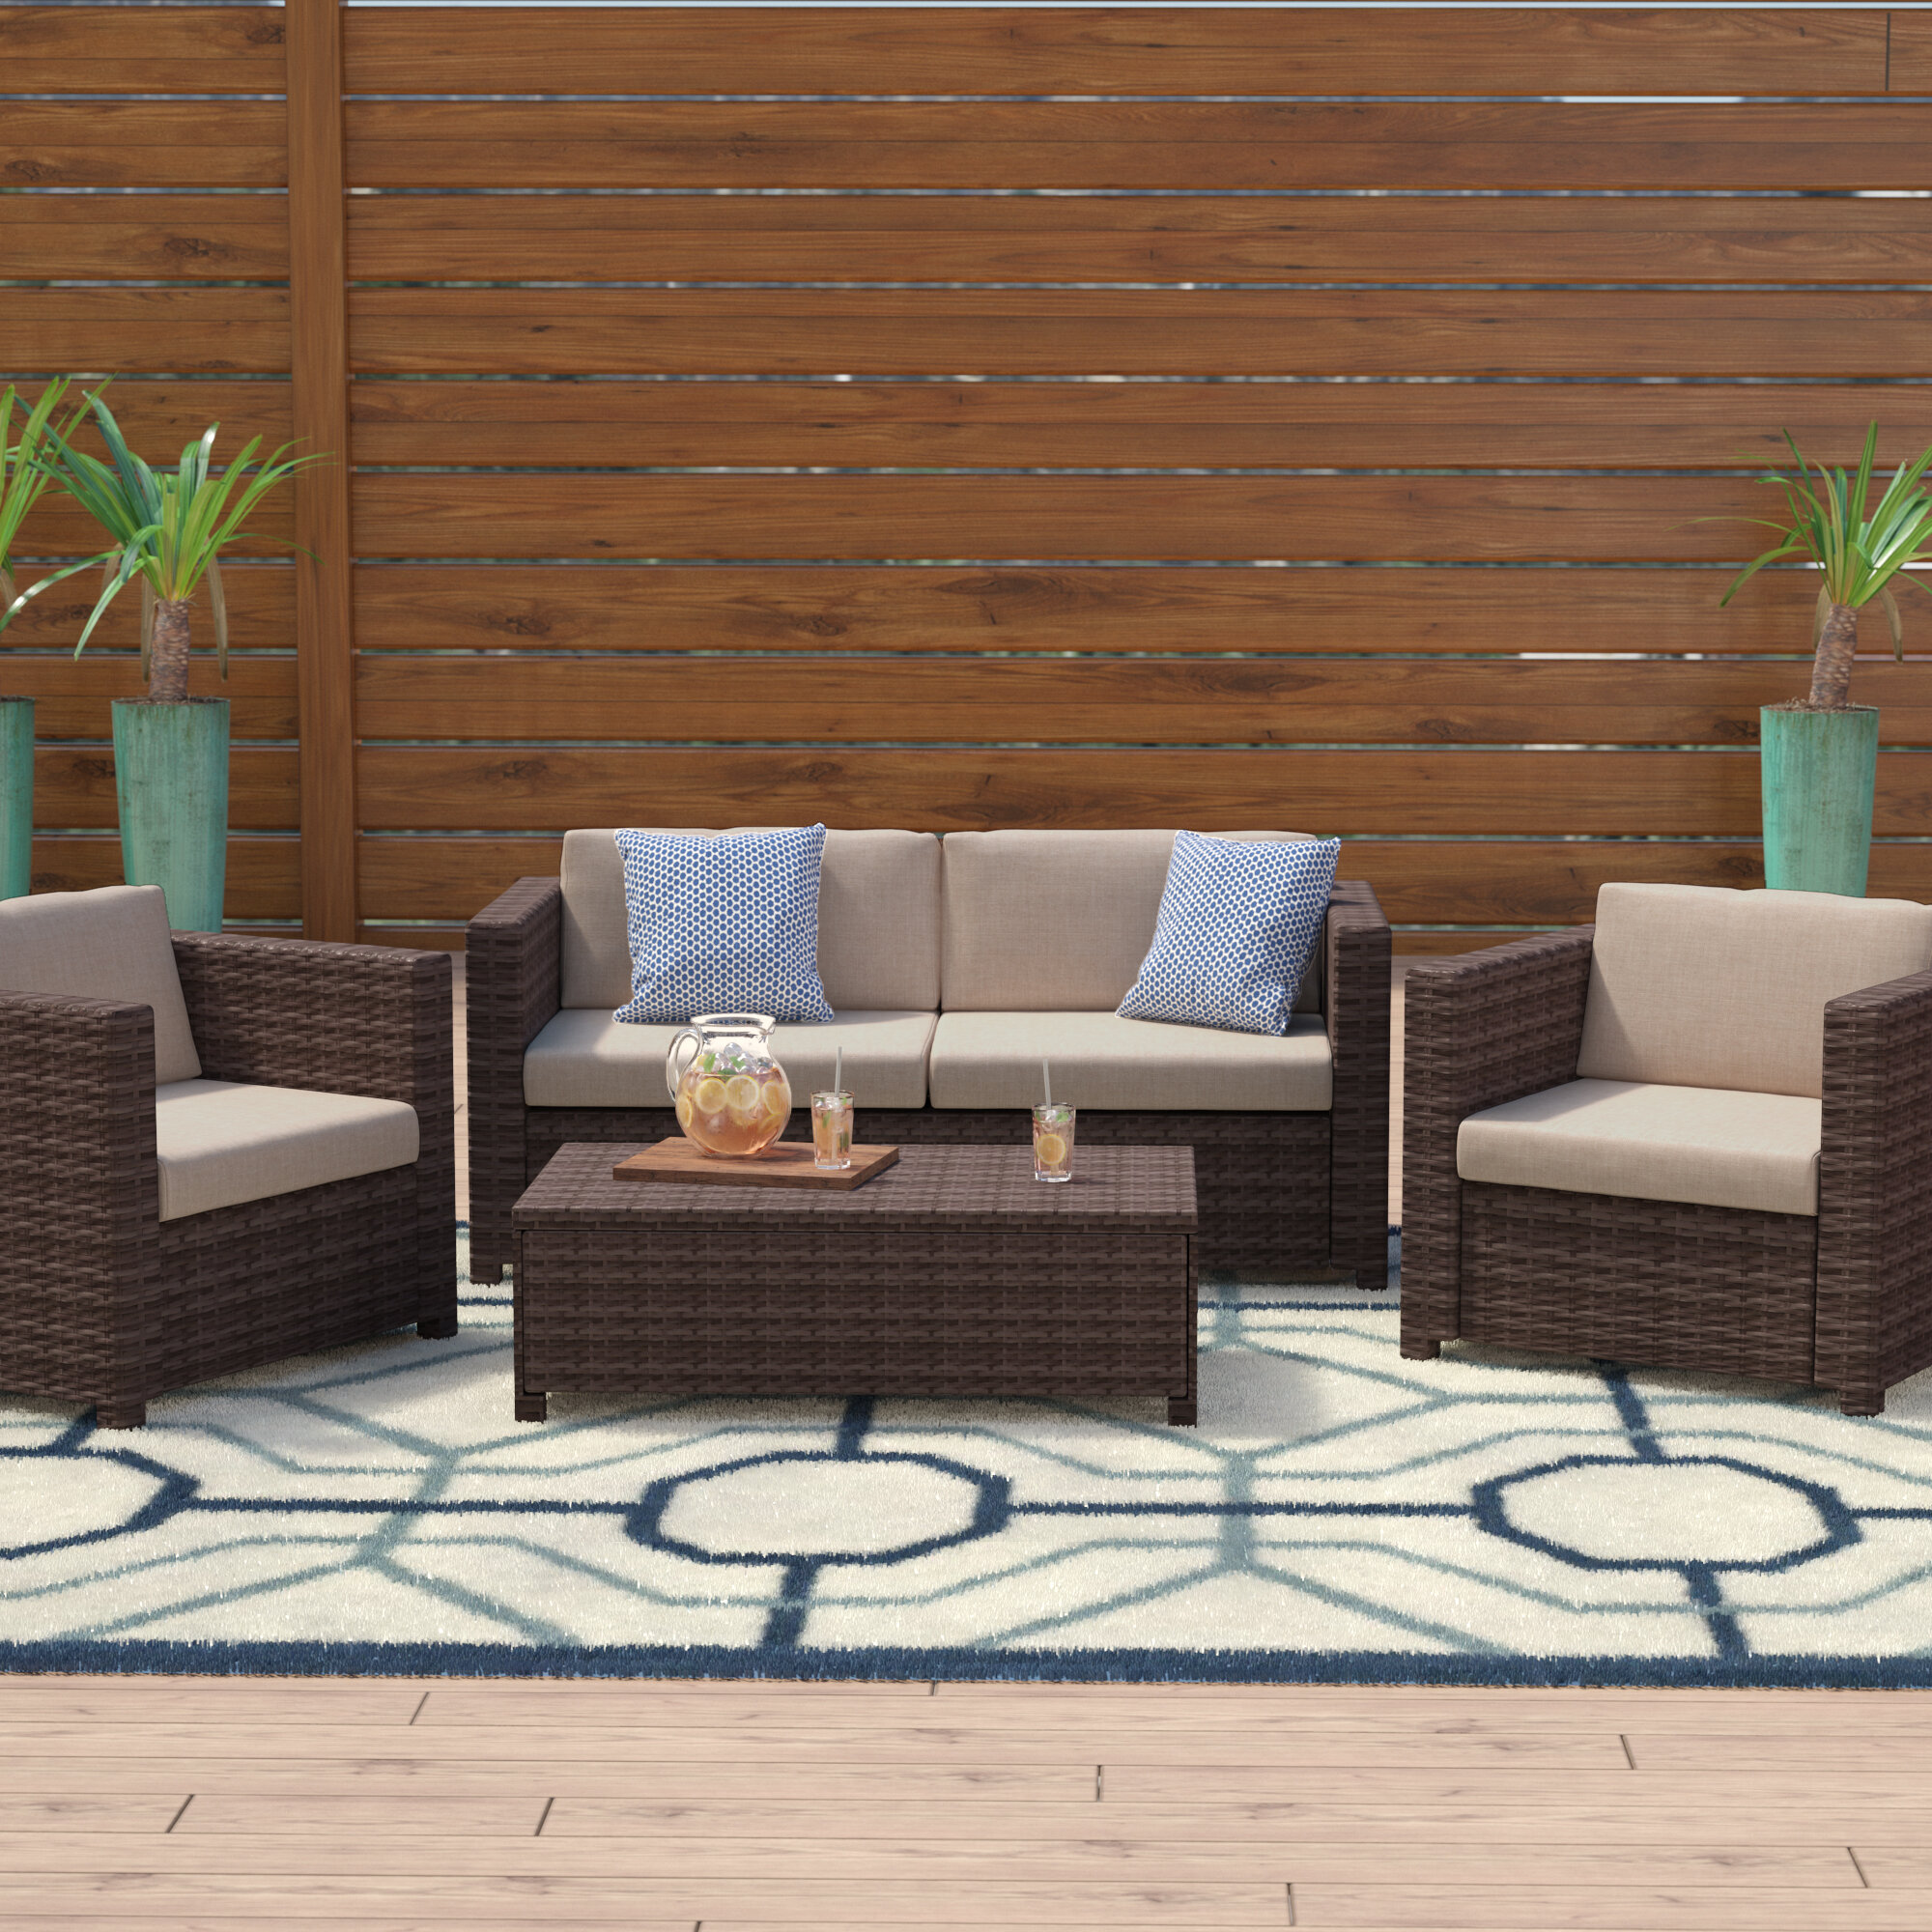 Excellent Kappa 4 Piece Rattan Sofa Seating Group With Cushions Machost Co Dining Chair Design Ideas Machostcouk